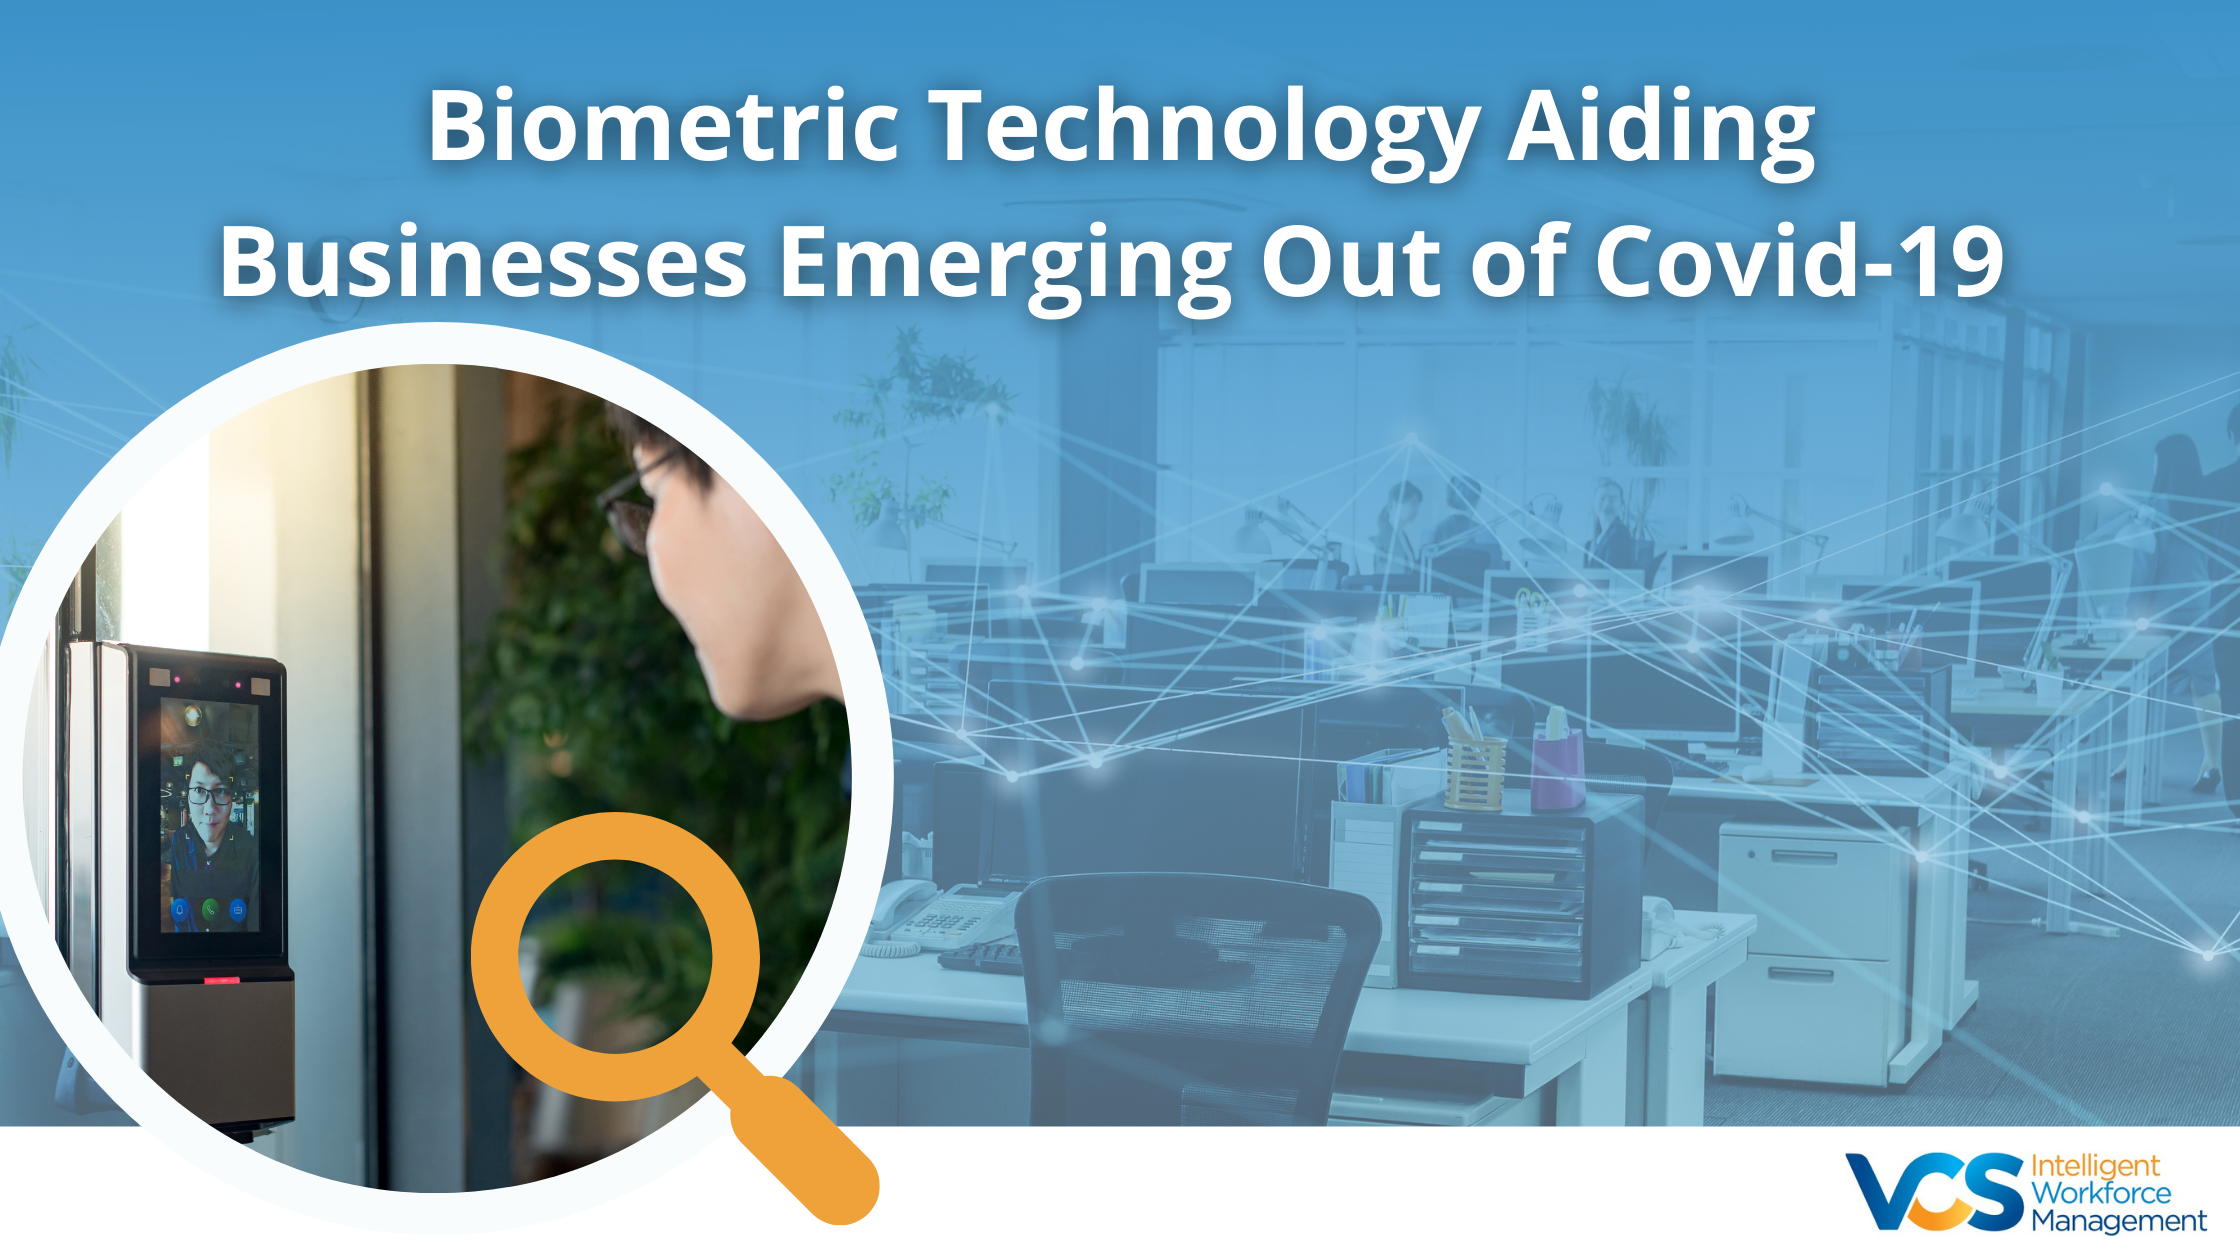 Biometric Technology Aiding Businesses Emerging Out of Covid-19